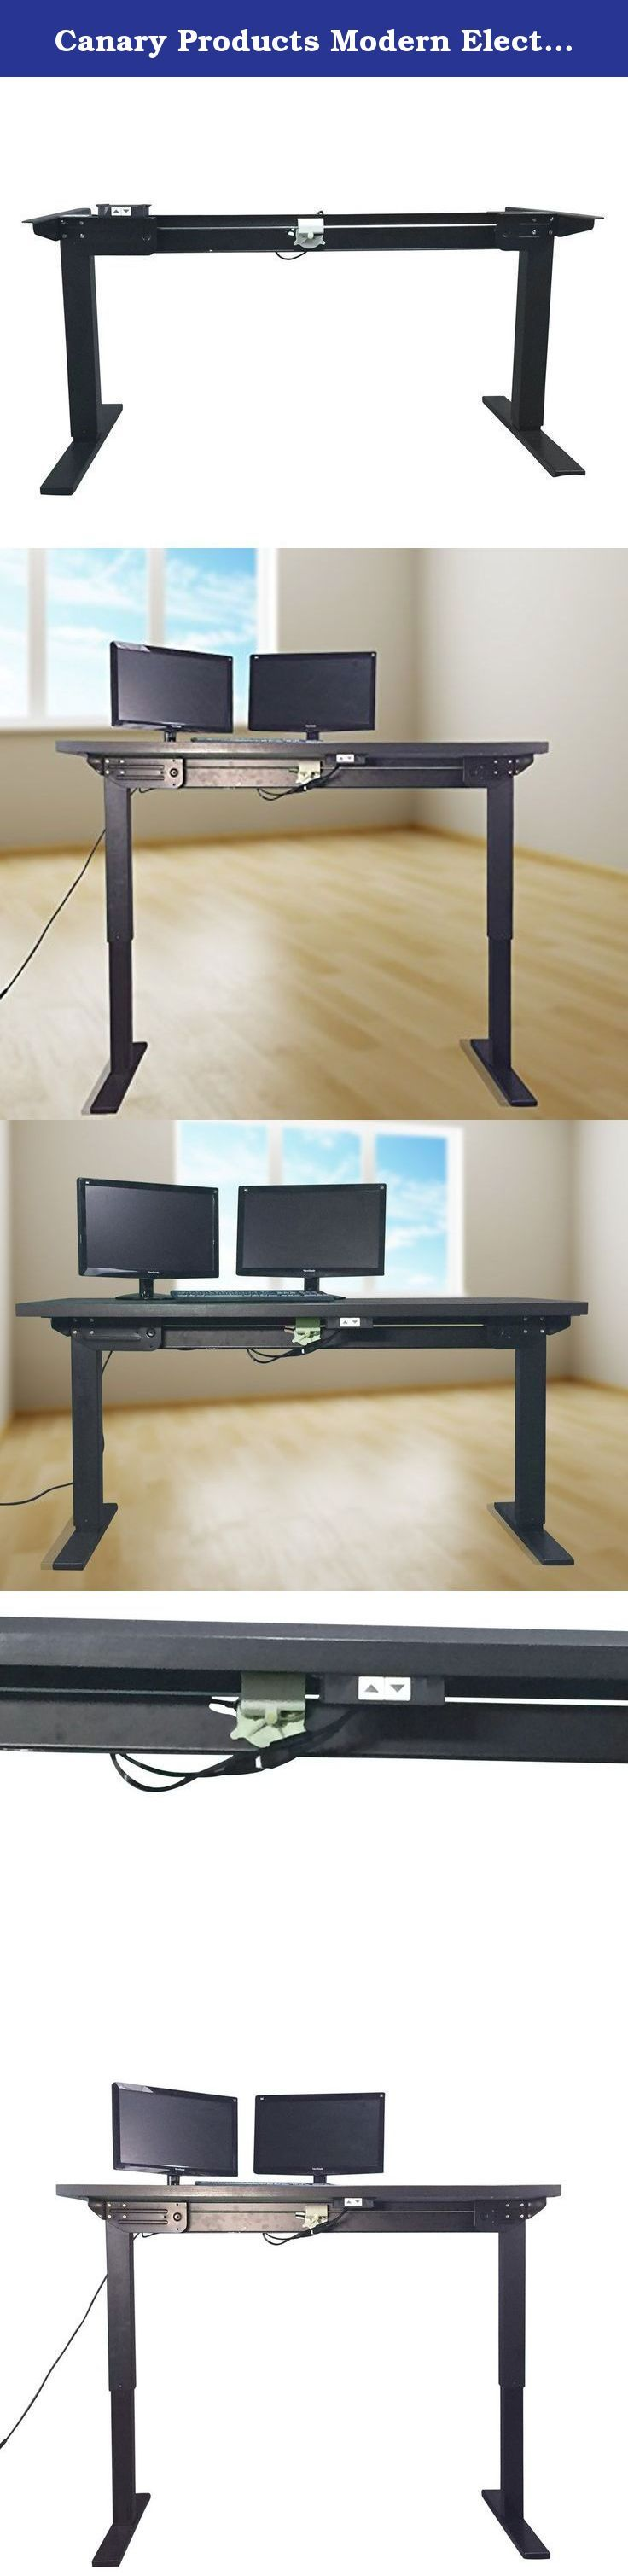 Canary Products Modern Electrical Height Adjustable Desk, Western. Sitting down for long periods of time has been linked to several health concerns, which includes increased blood pressure, high blood sugar, abnormal cholesterol level and excess body fat around the waist. Sitting down for long periods of time, unfortunately, can be very difficult to avoid. This is especially true in the present time sitting down in front of the computer. Our solution to this is our ABC306 Electric and...